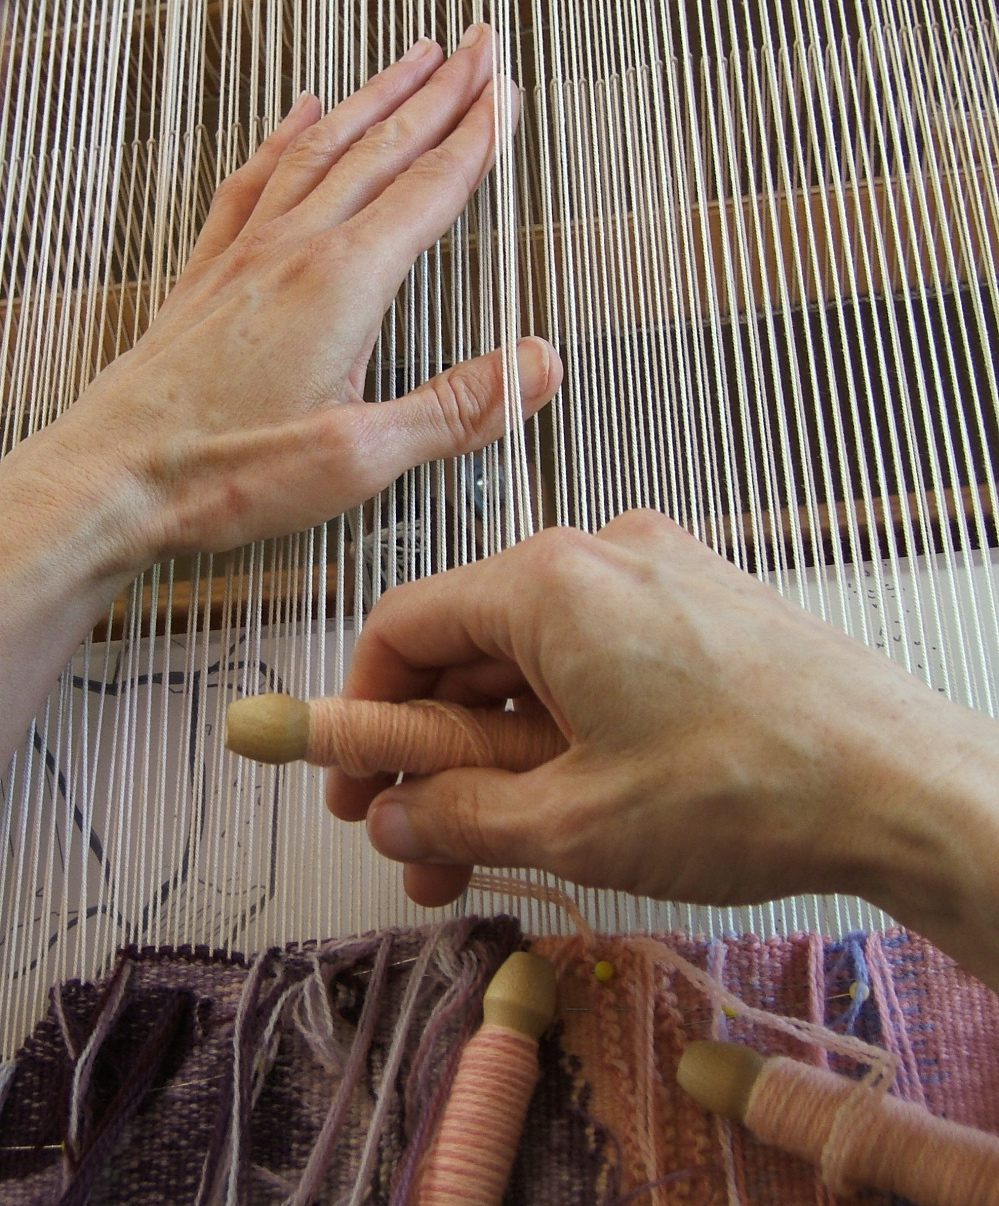 Elizabeth Buckley's hands weaving, with bobbins of crewel weight wool yarn. Photo credit: Lany Eila.